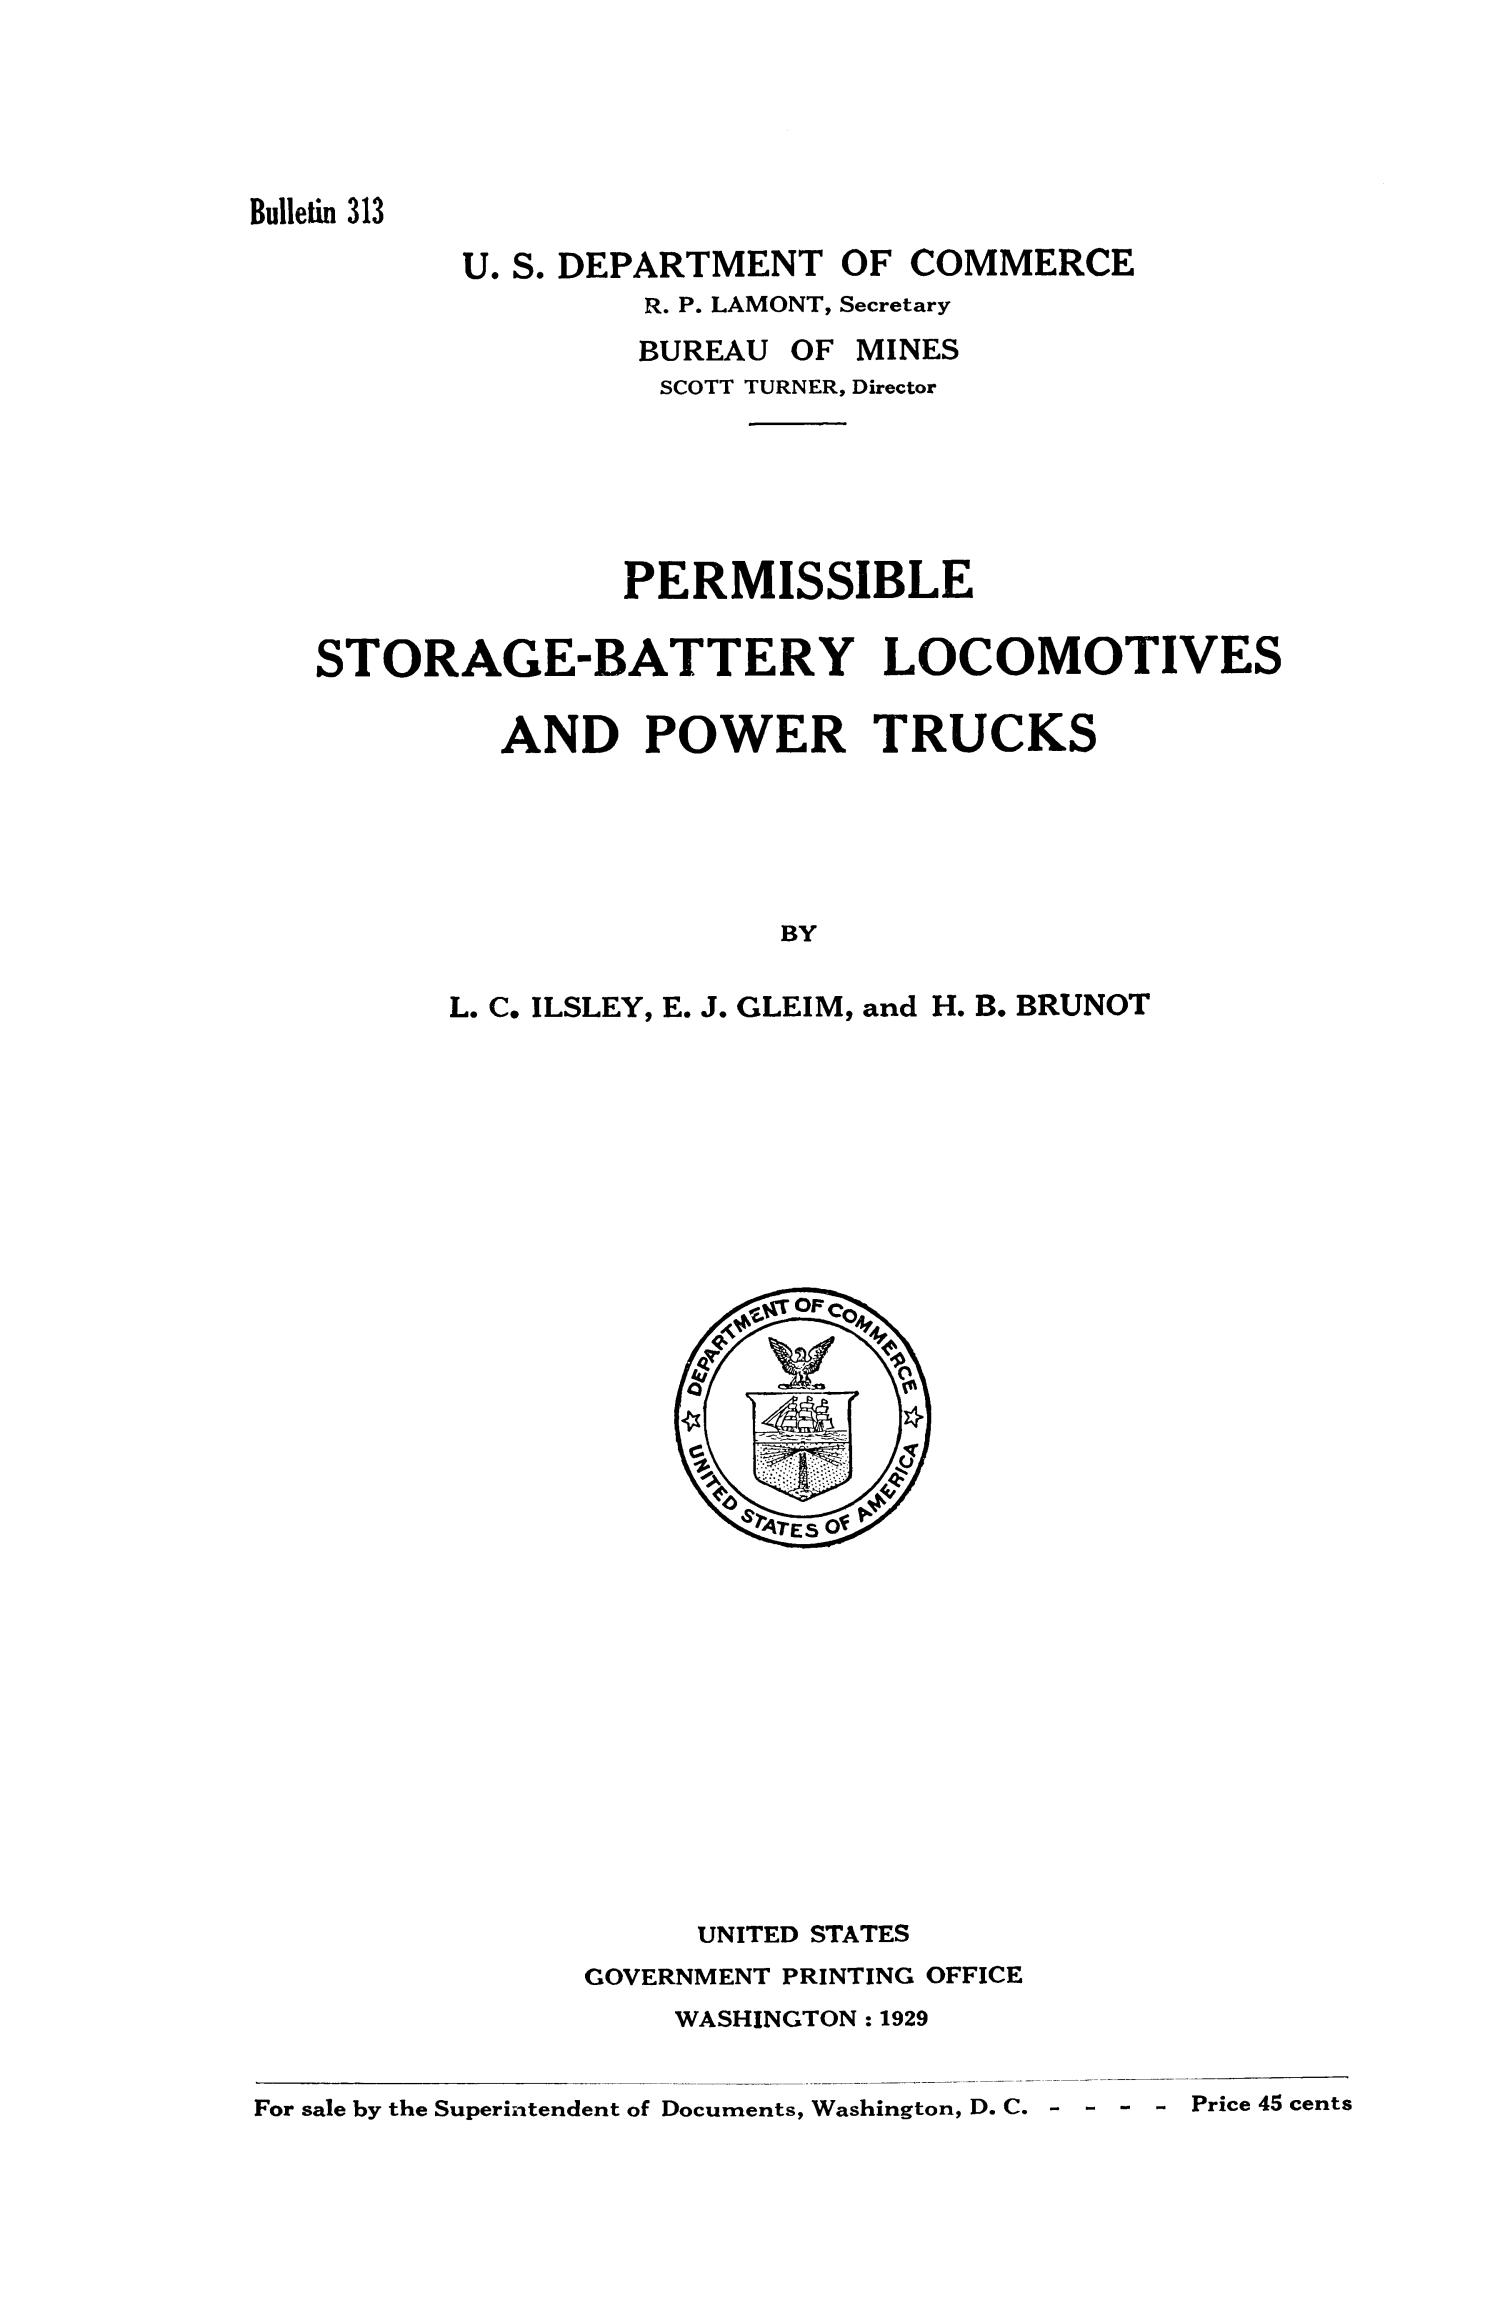 Permissible Storage - Battery Locomotives and Power Trucks                                                                                                      I